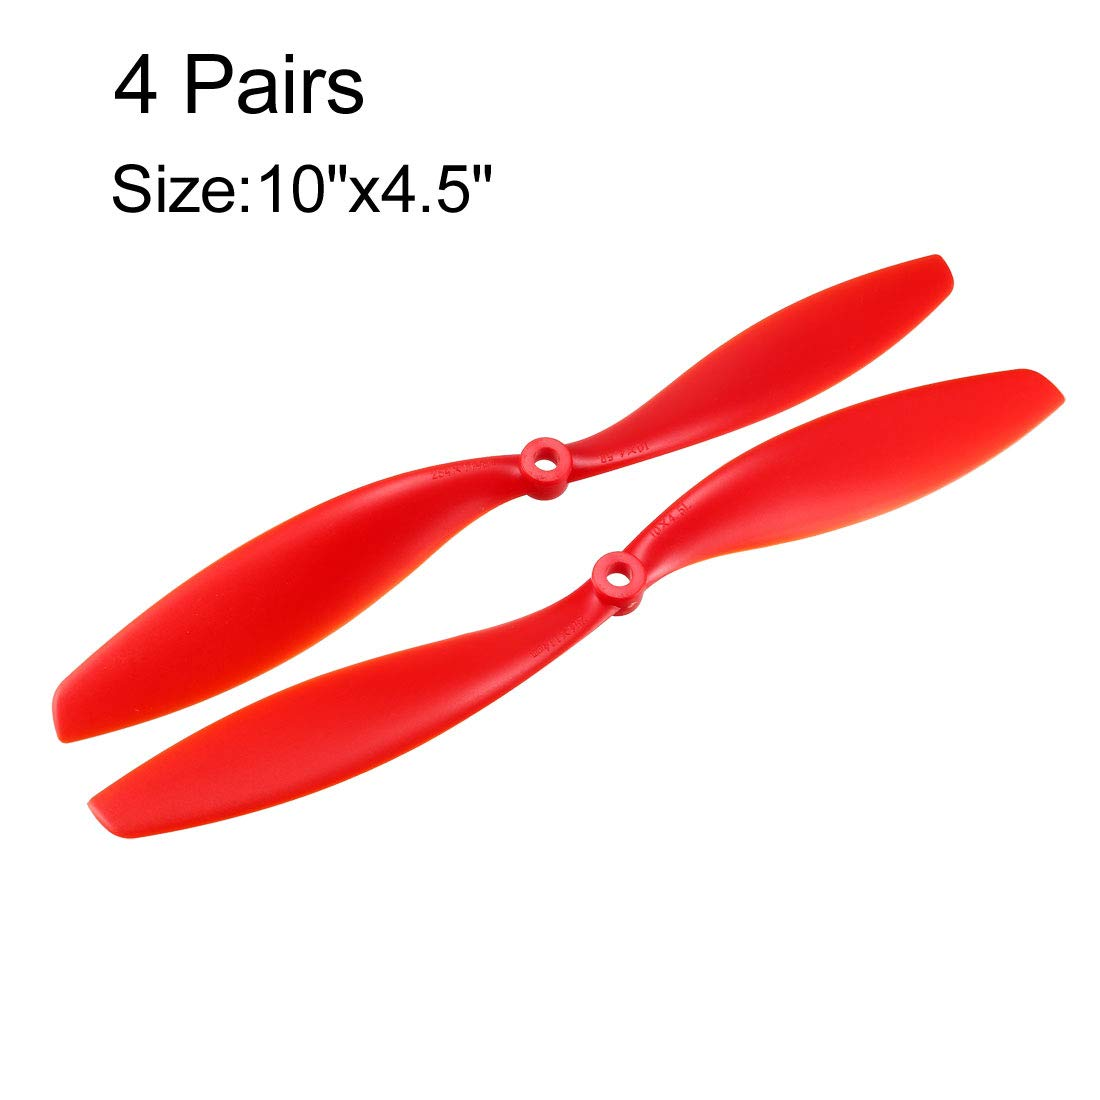 Nylon Orange 10pcs with Adapter Rings uxcell RC Propellers CW 7035 7x3.5 Inch 2-Vane Fixed-Wing for Airplane Toy